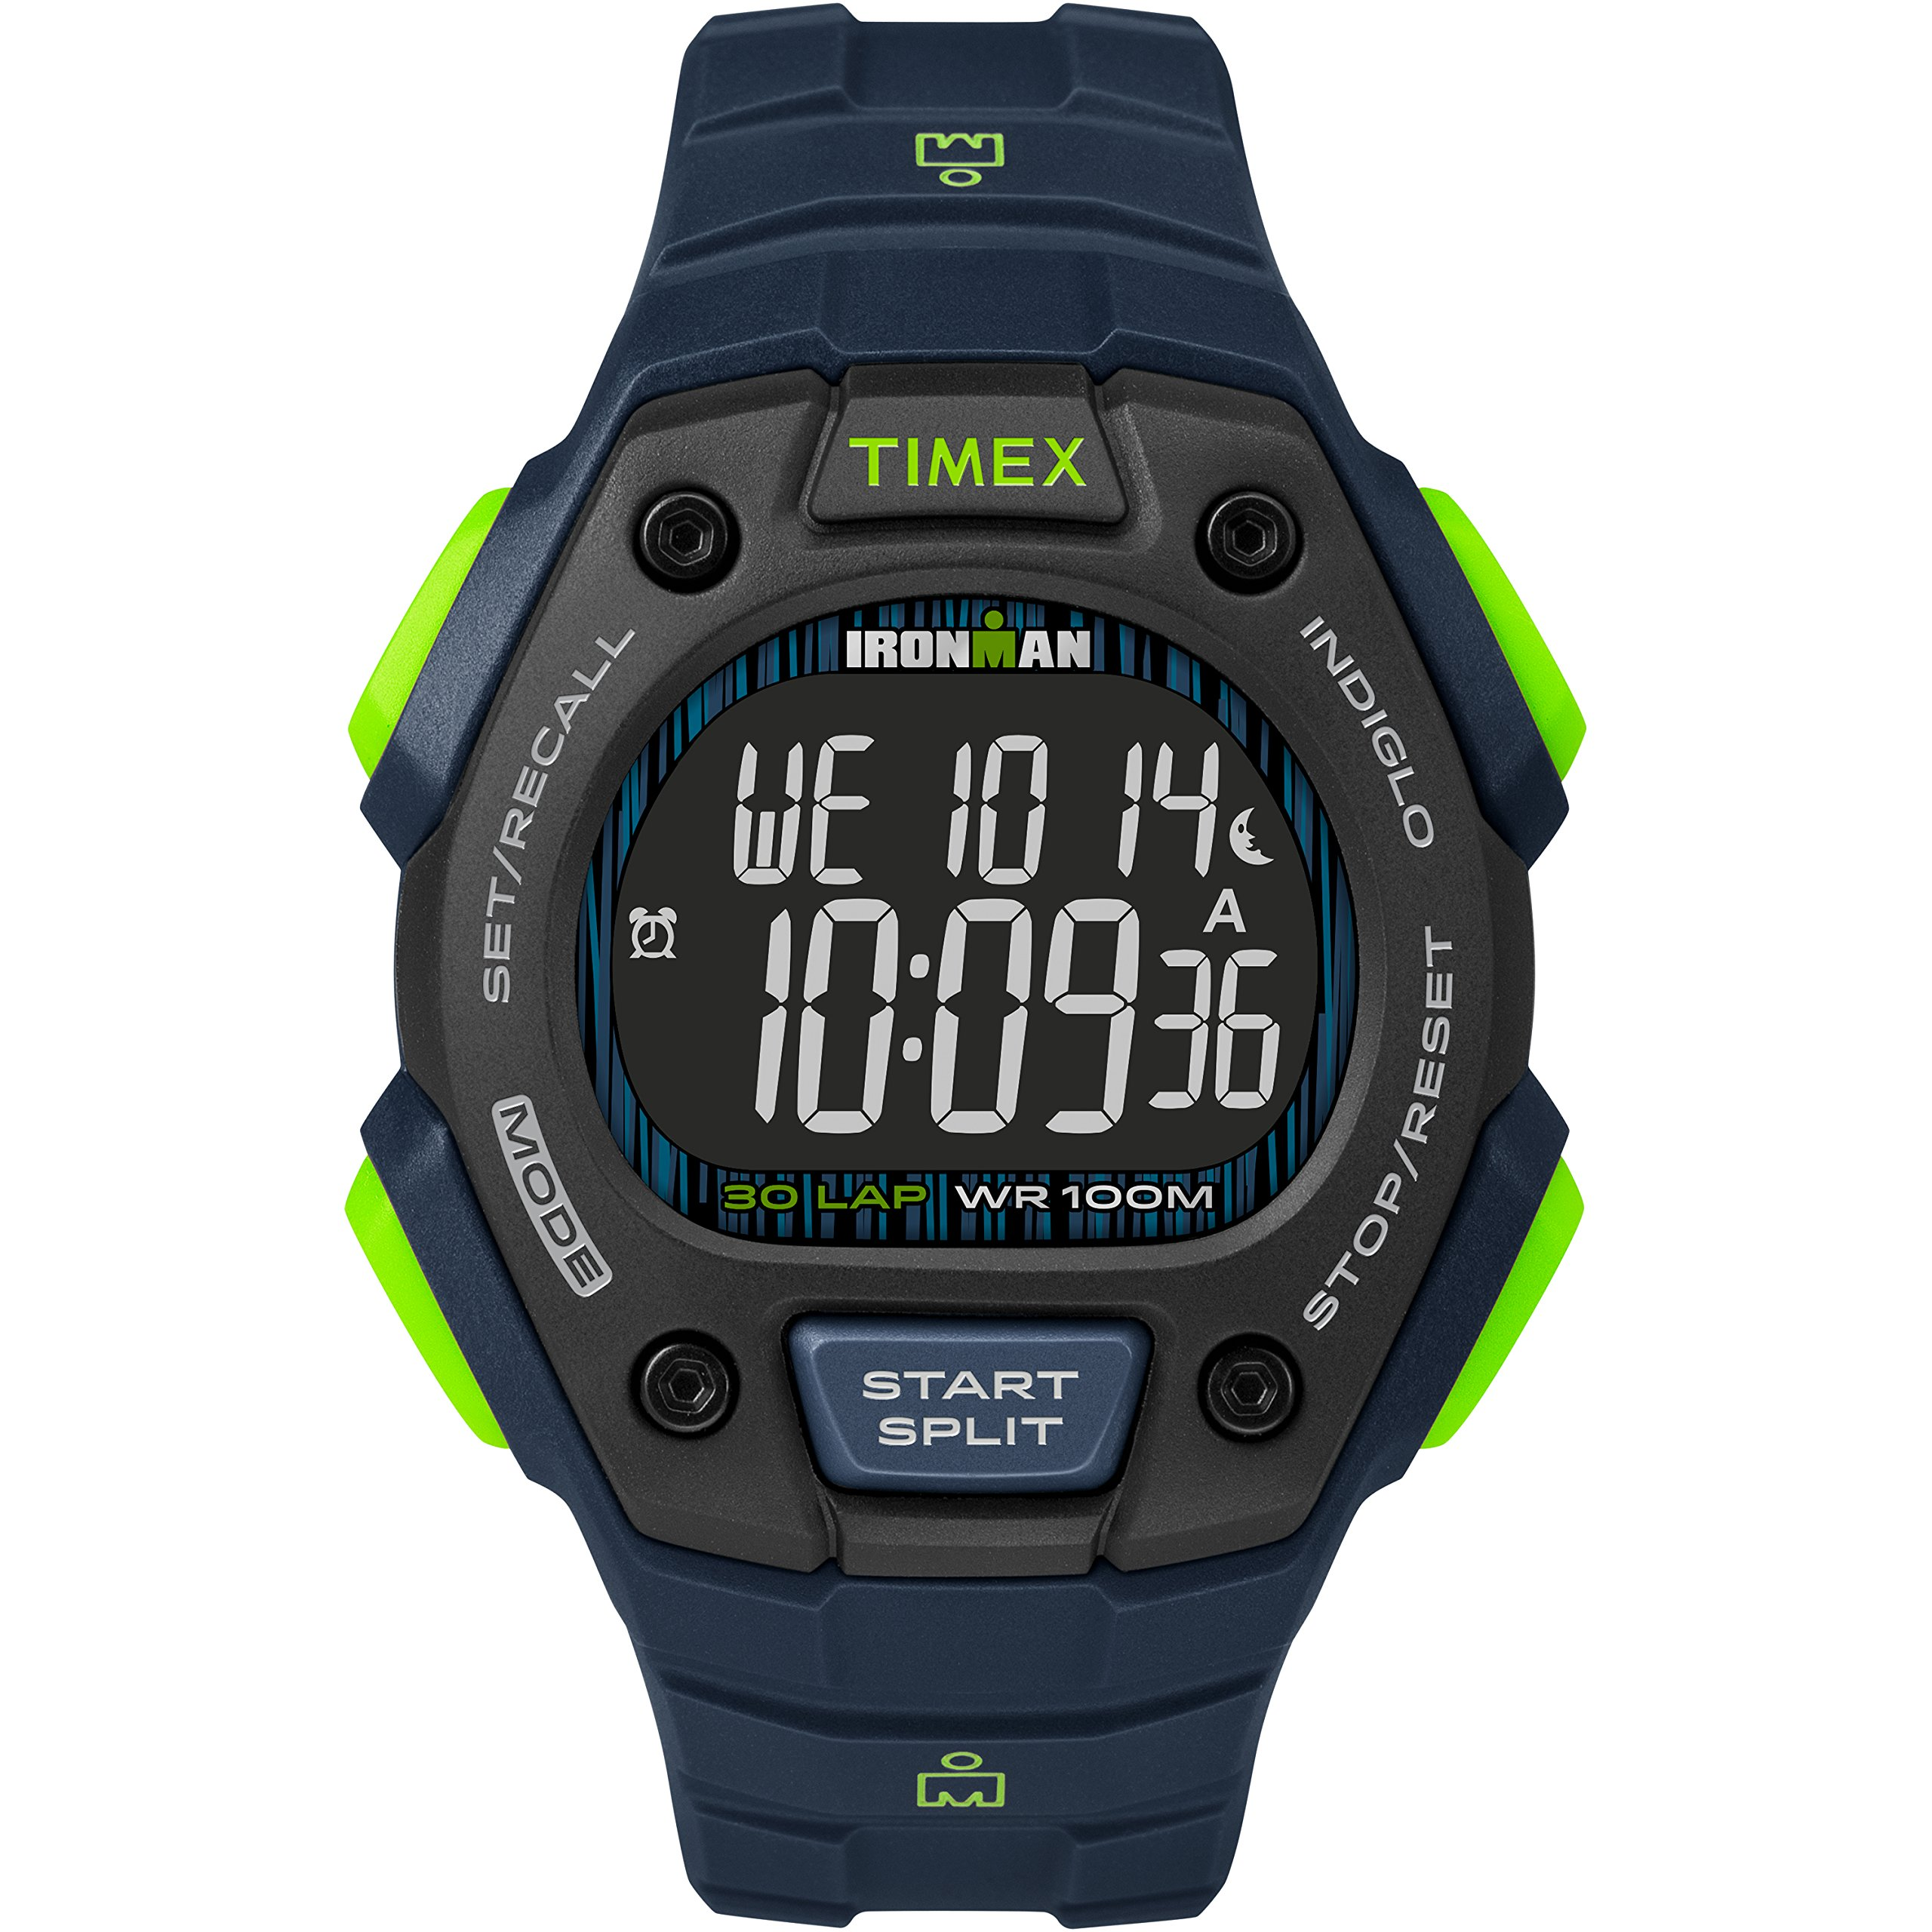 Timex Men's TW5M18800 Ironman Classic 30 Blue/Lime/Negative Resin Strap Watch by Timex